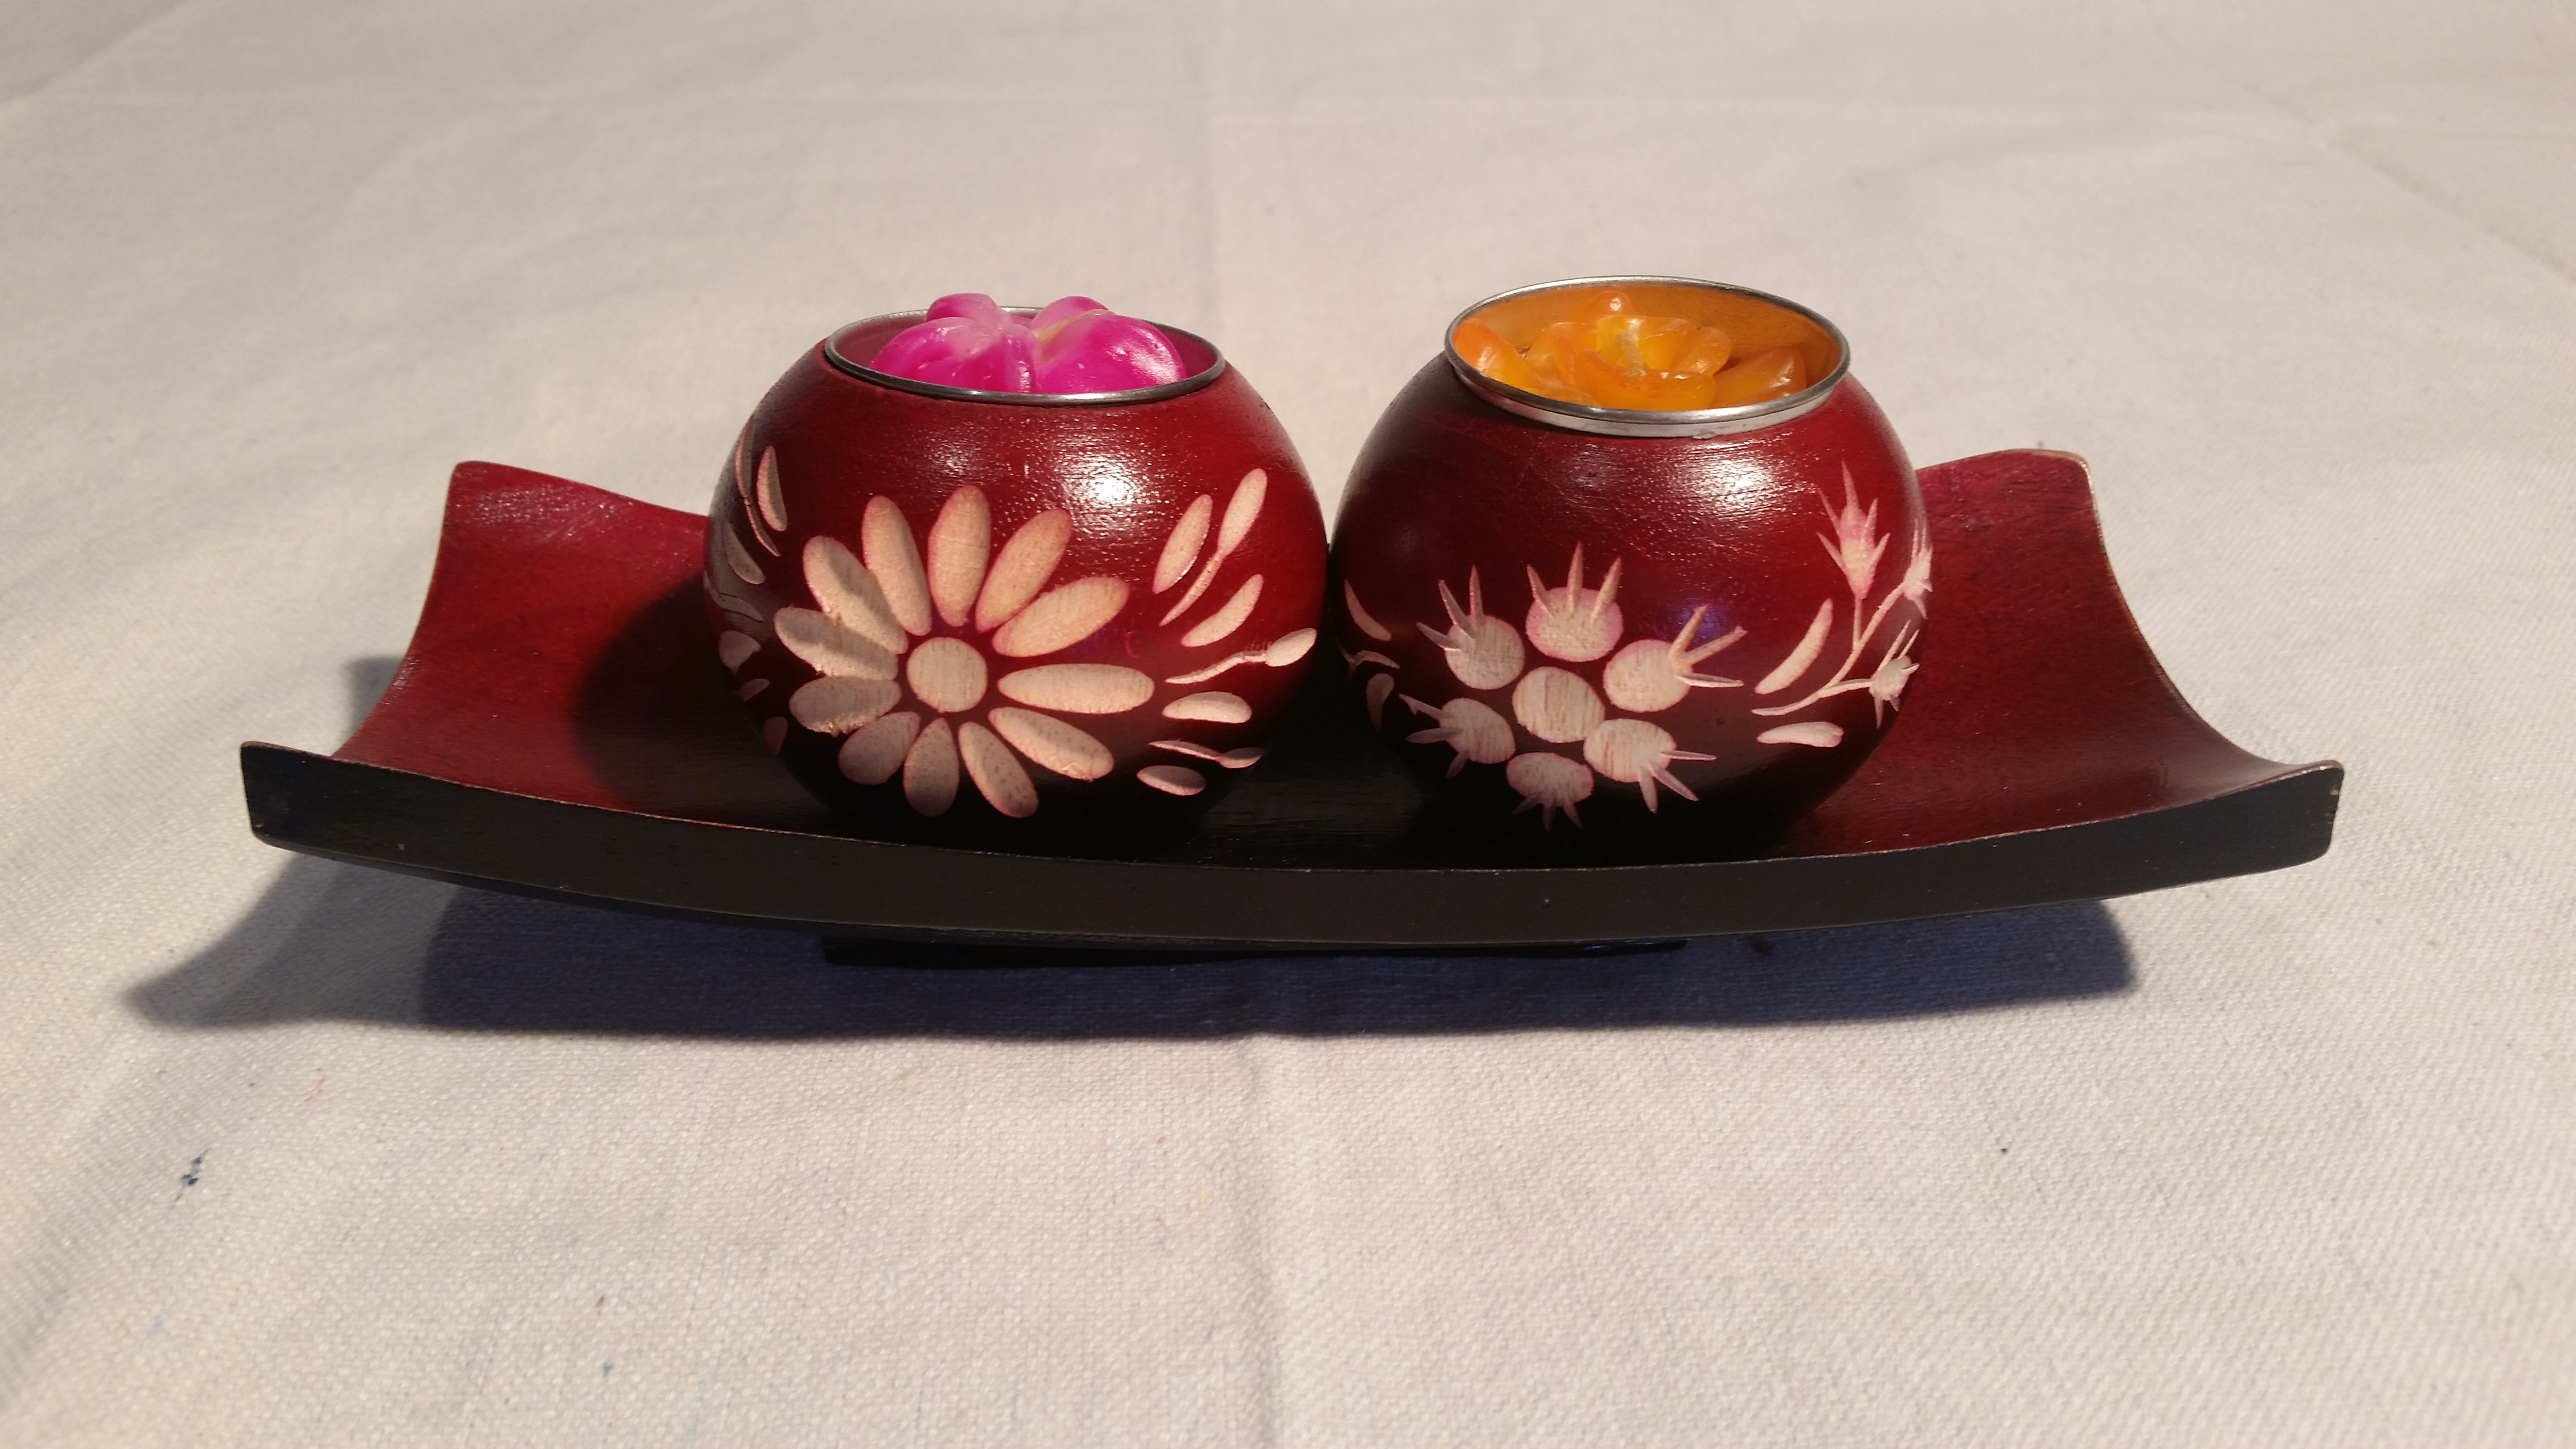 8 inch red candle bowl set 1%282%29